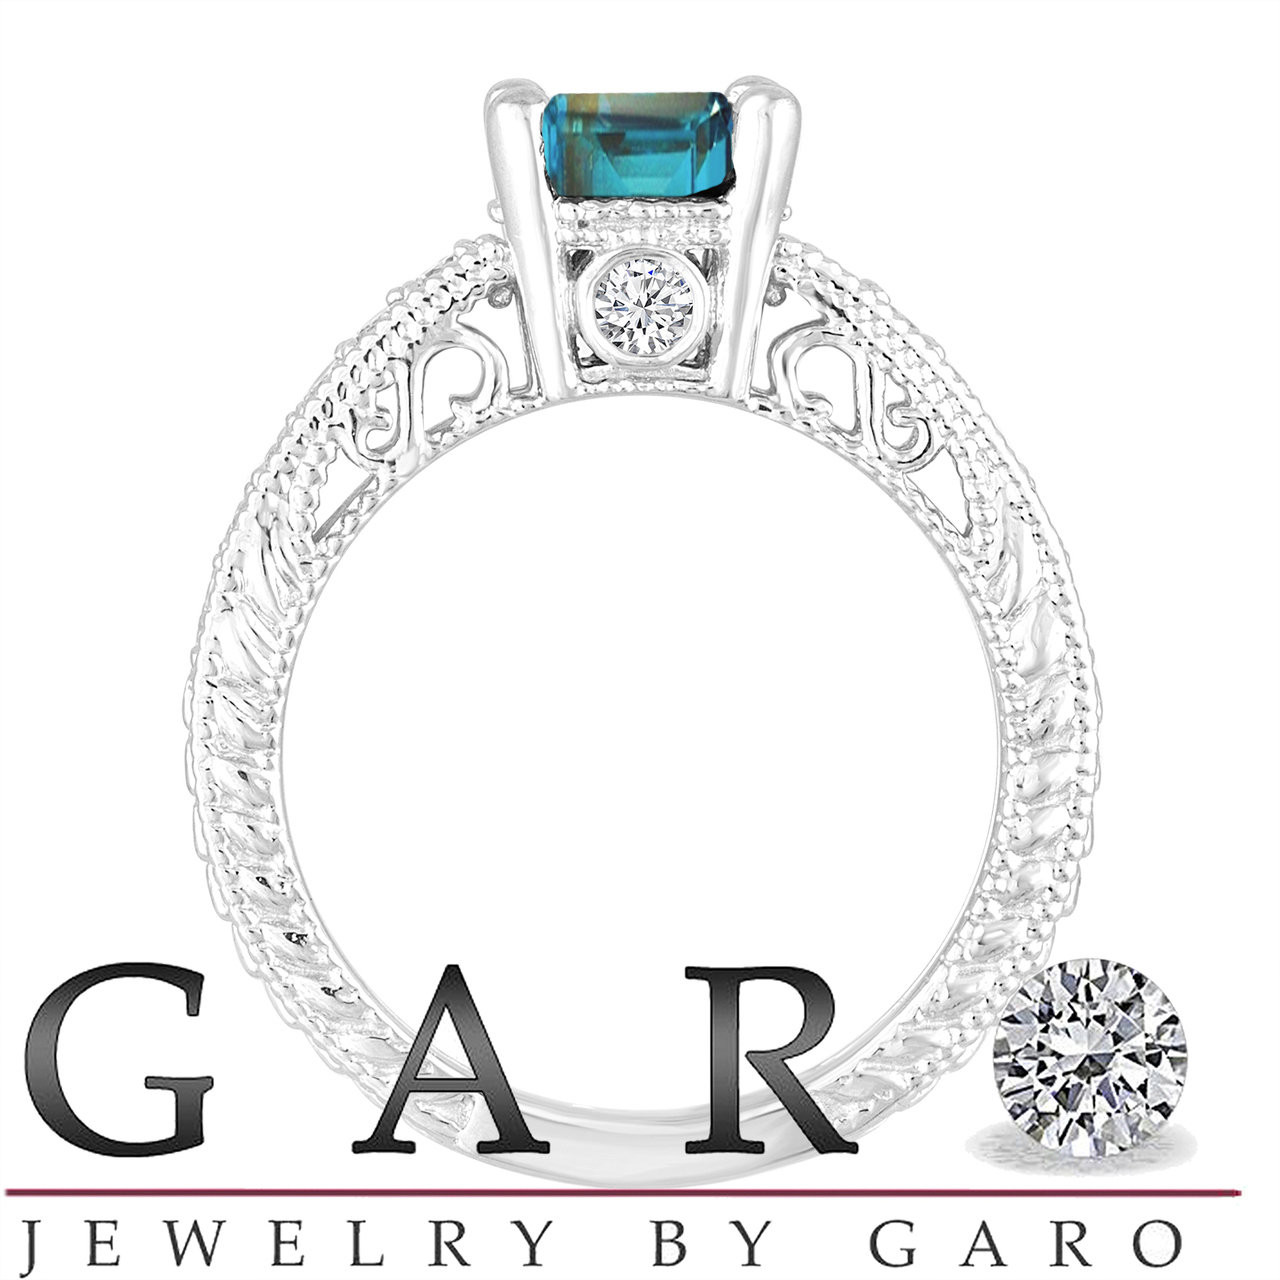 Jewelry & Watches 1.37 Ct Blue Topaz And Diamonds Ring 14k White Gold Natural With Latest Technology Diamond